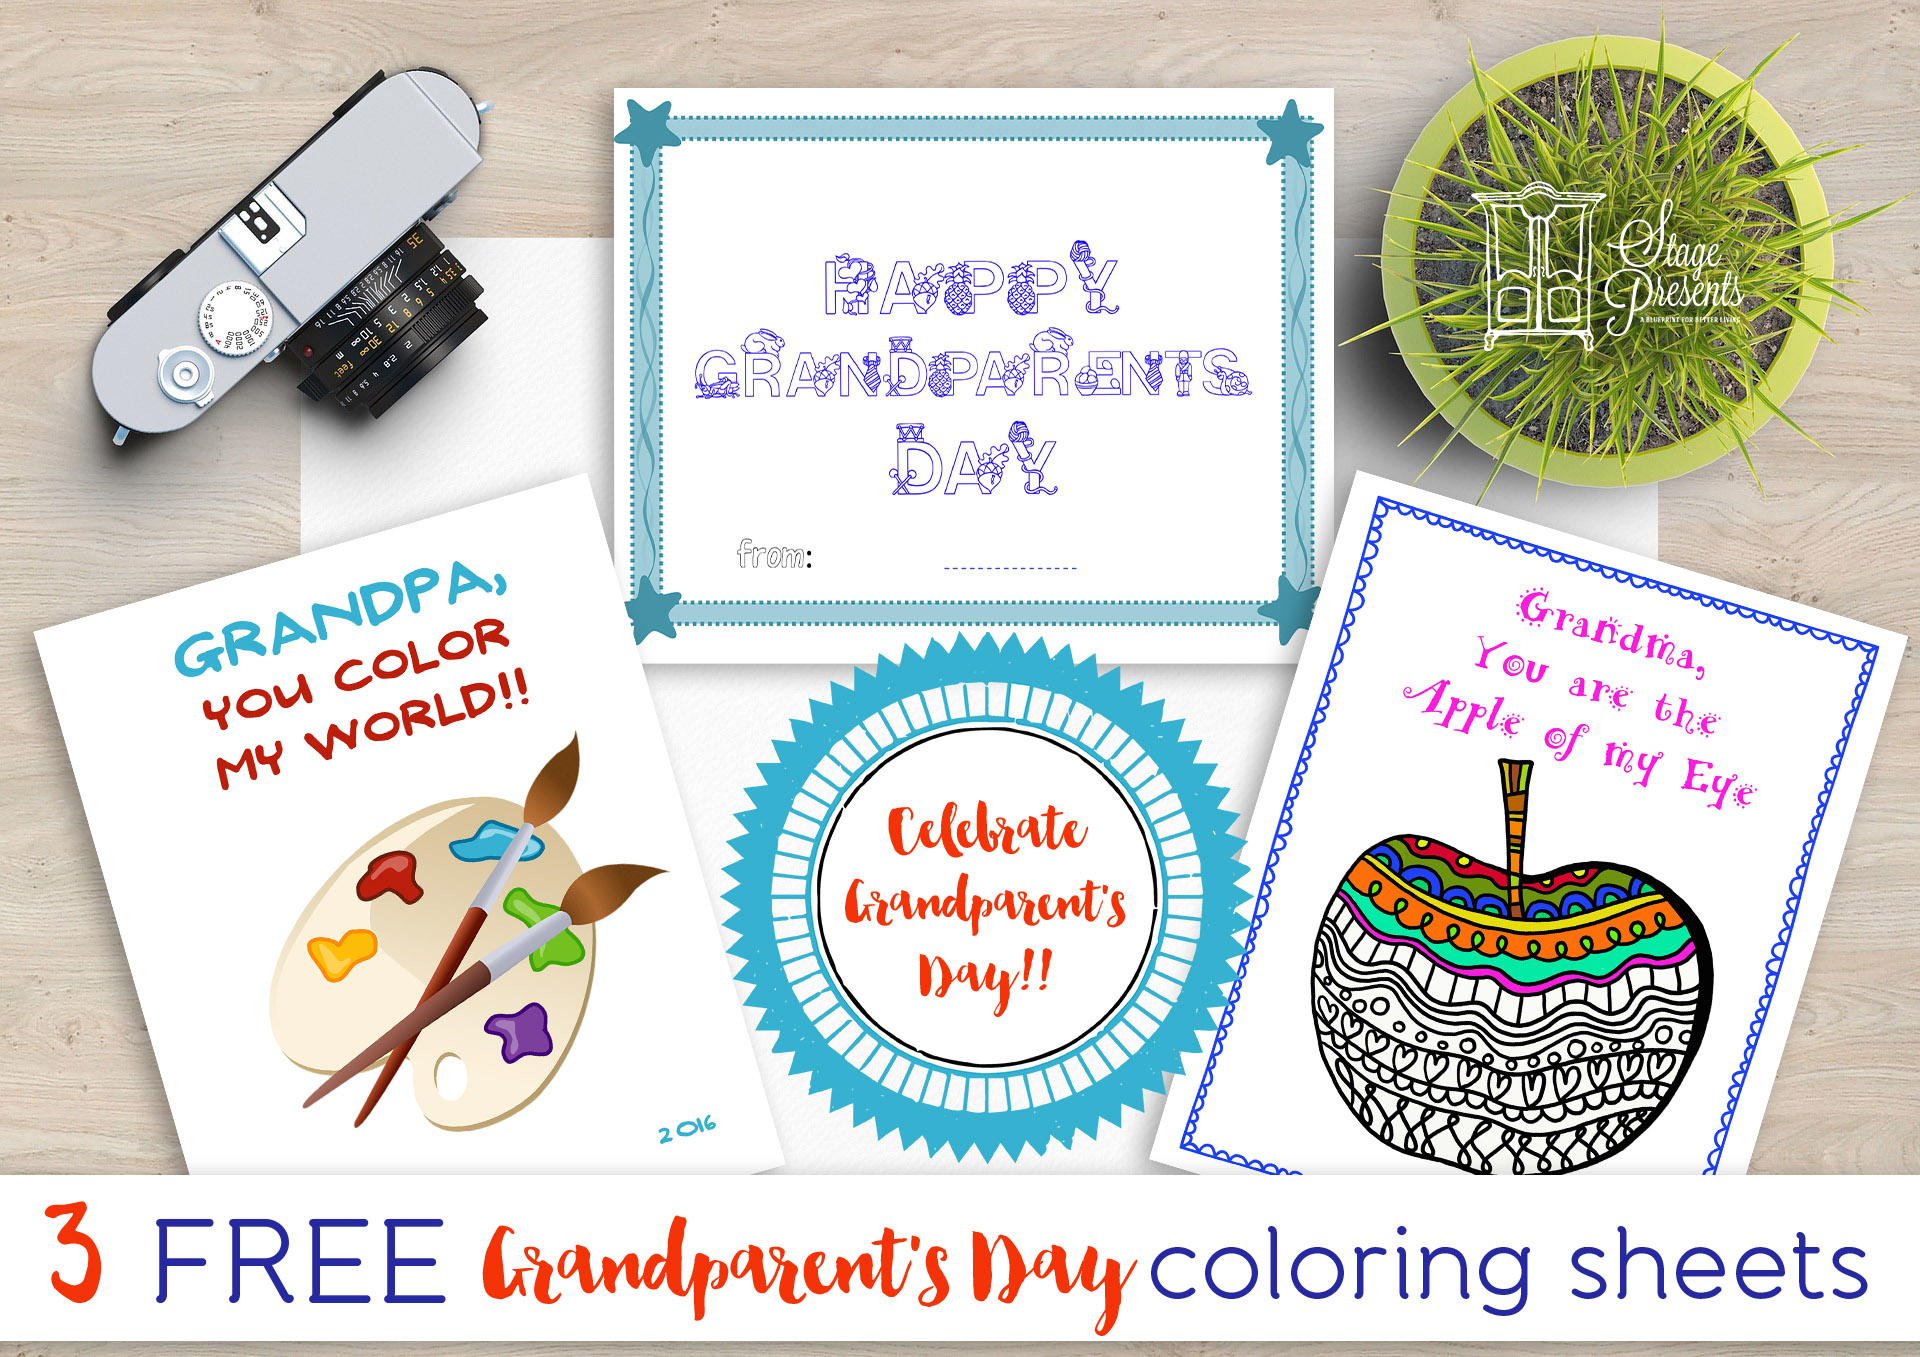 Celebrate Grandparent's Day with 3 Free Grandparent's Day Coloring Sheets - stage-presents.com